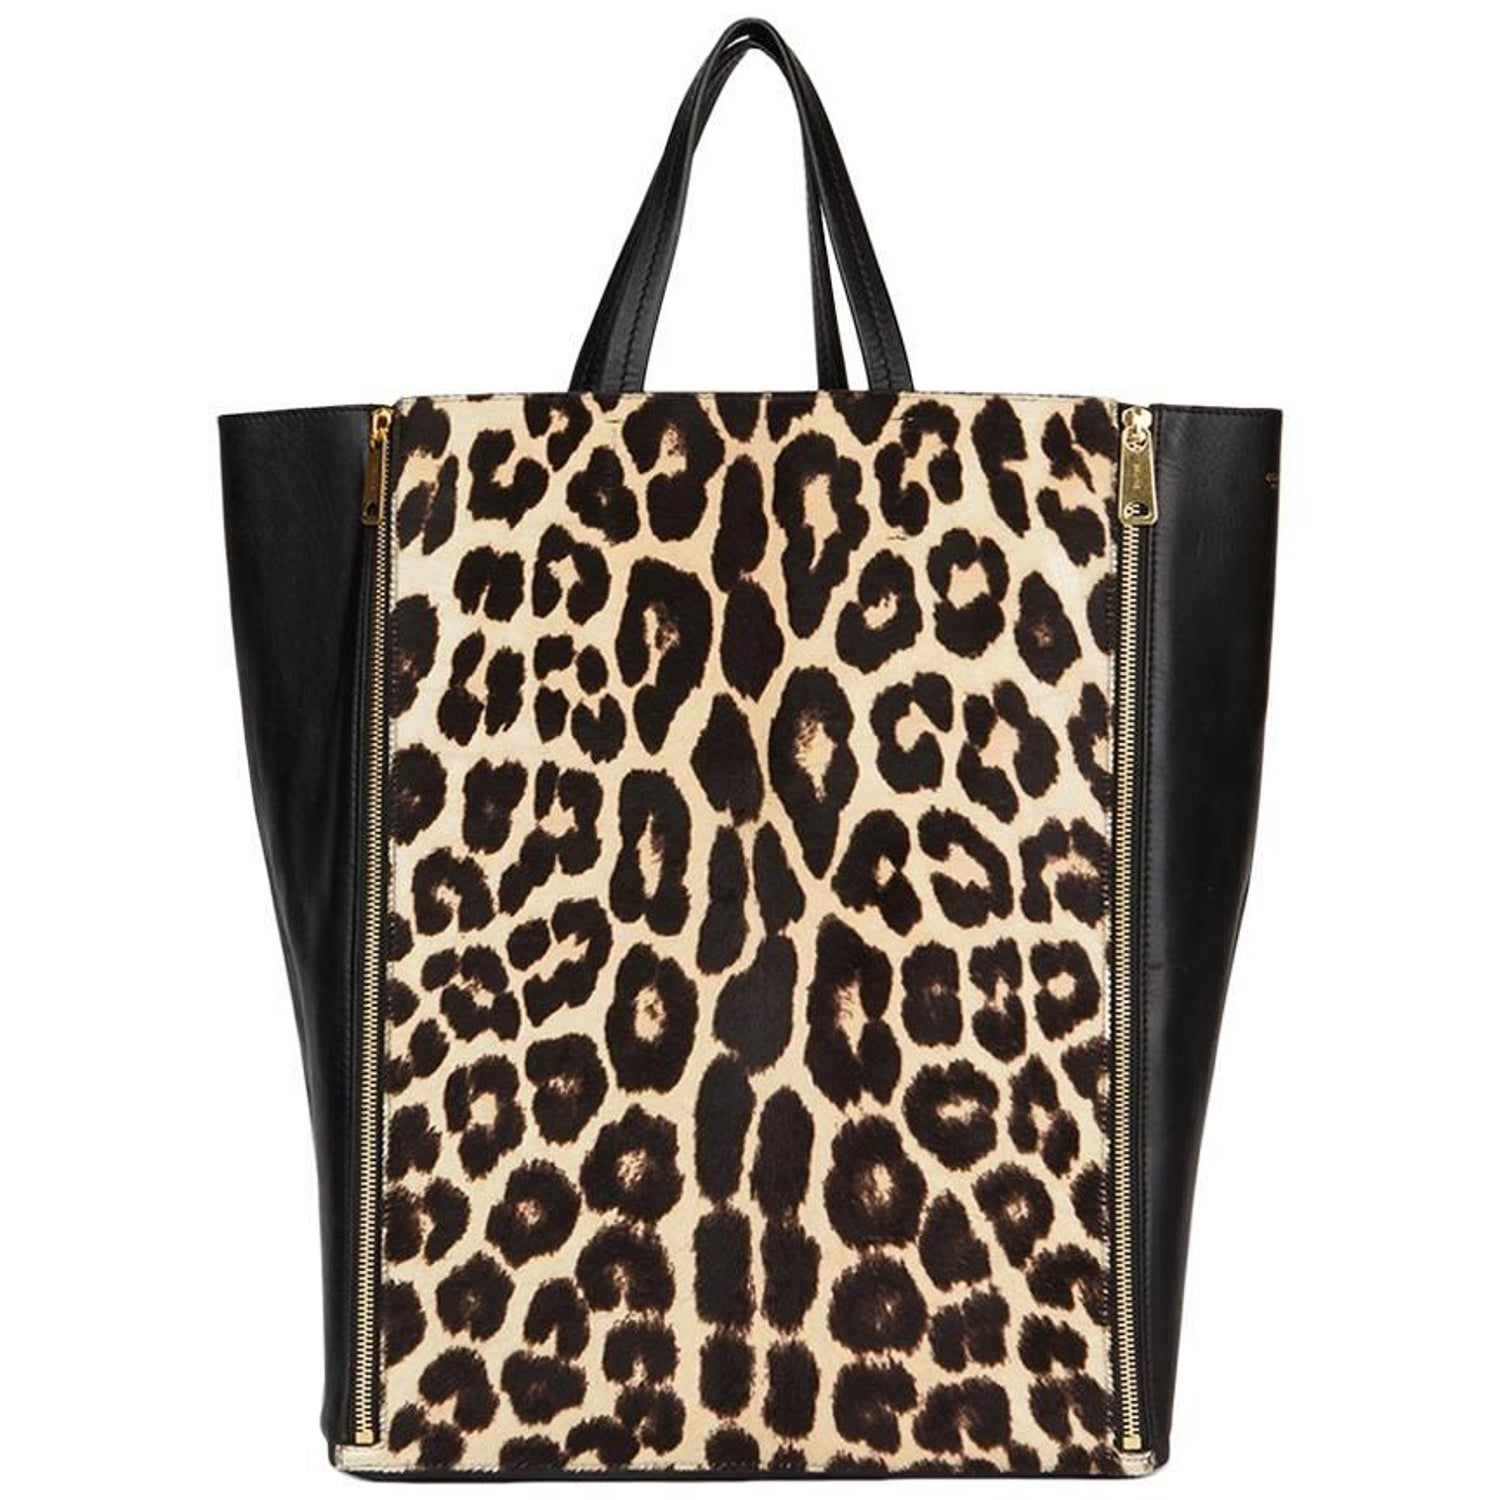 2013 Celine Black Lambskin and Leopard Pony Fur Vertical Gusset Cabas Tote  at 1stdibs 0f2cbe49a6cc6